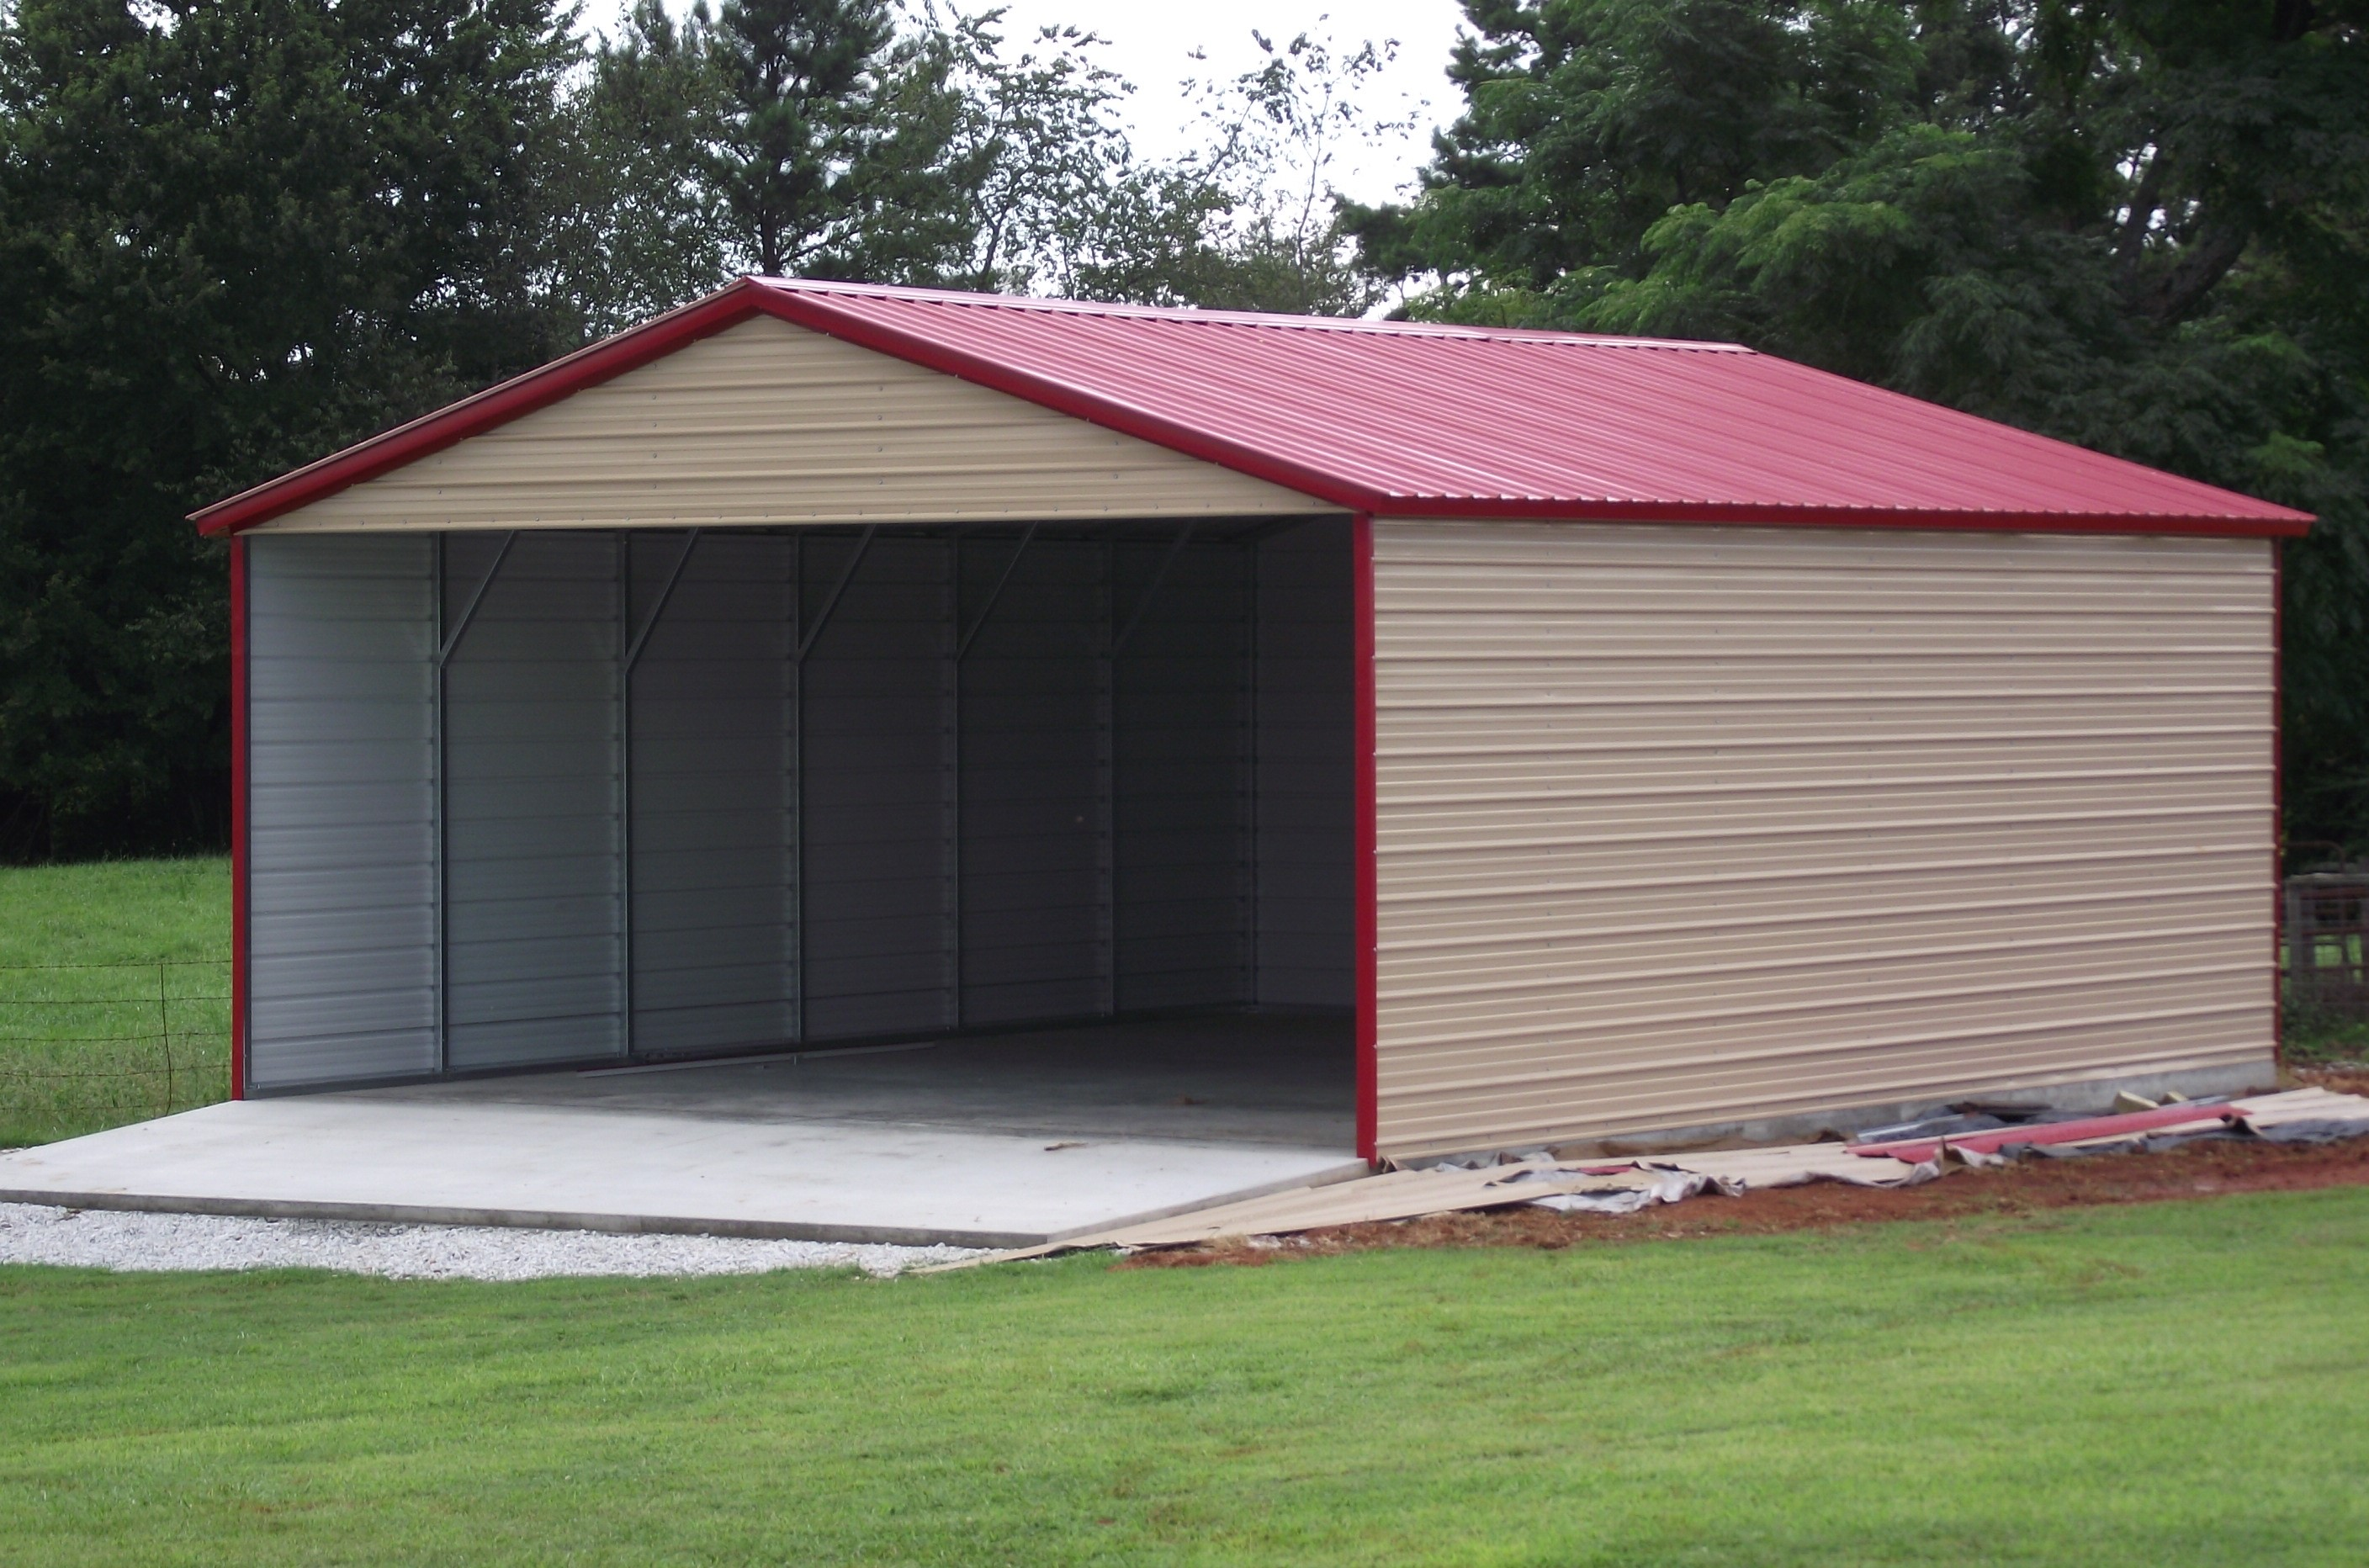 Standard carport custom options wholesale direct carports for Attached garage kits